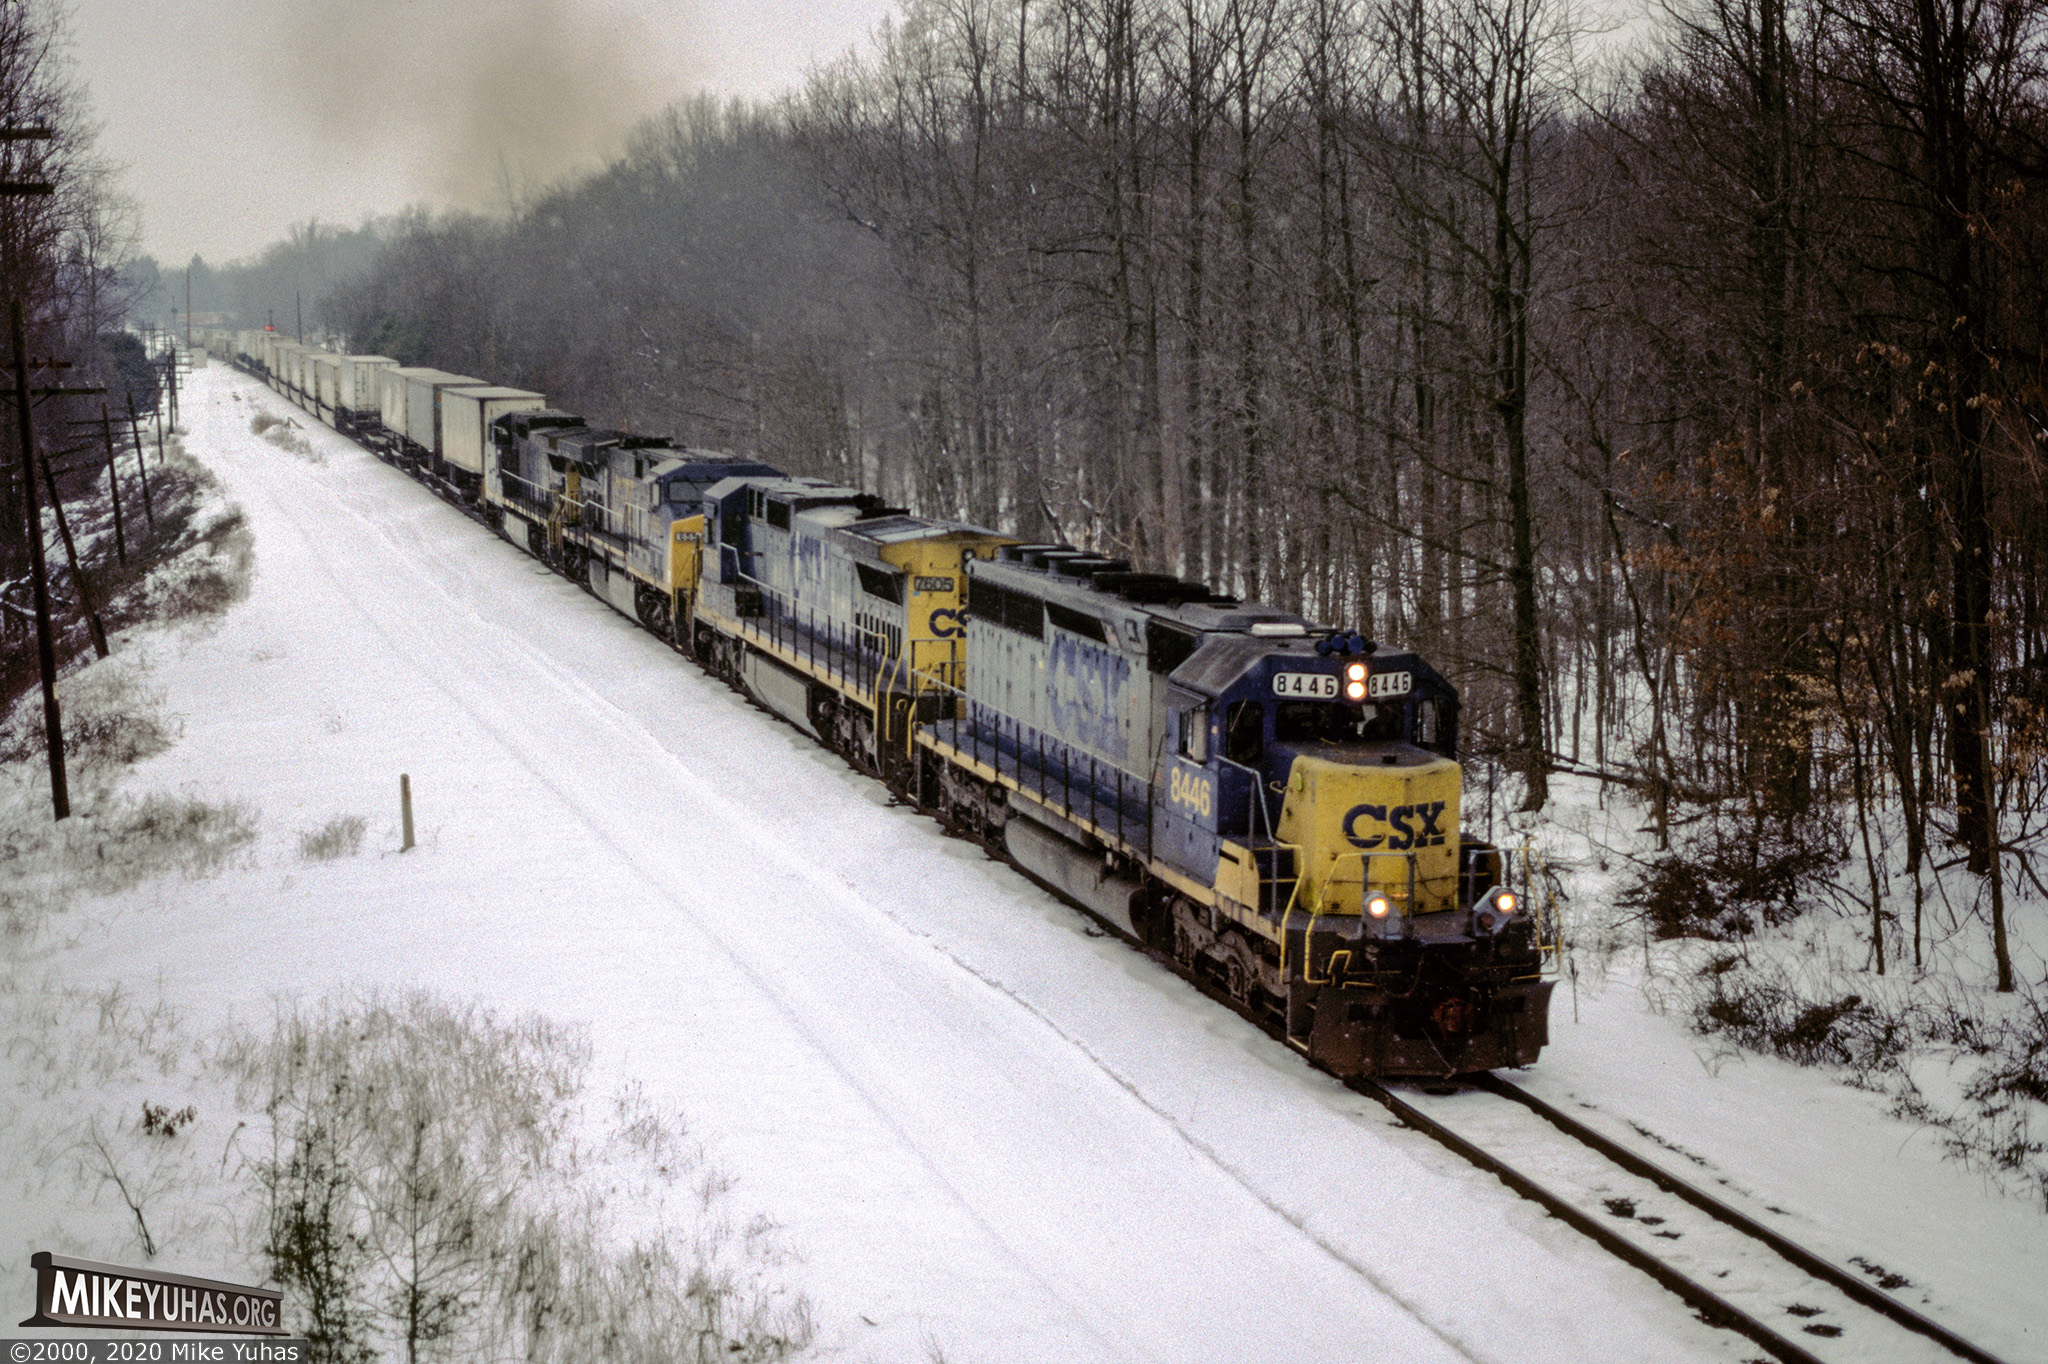 Railroad Photos by Mike Yuhas: Aikin, Maryland, 2/4/2000